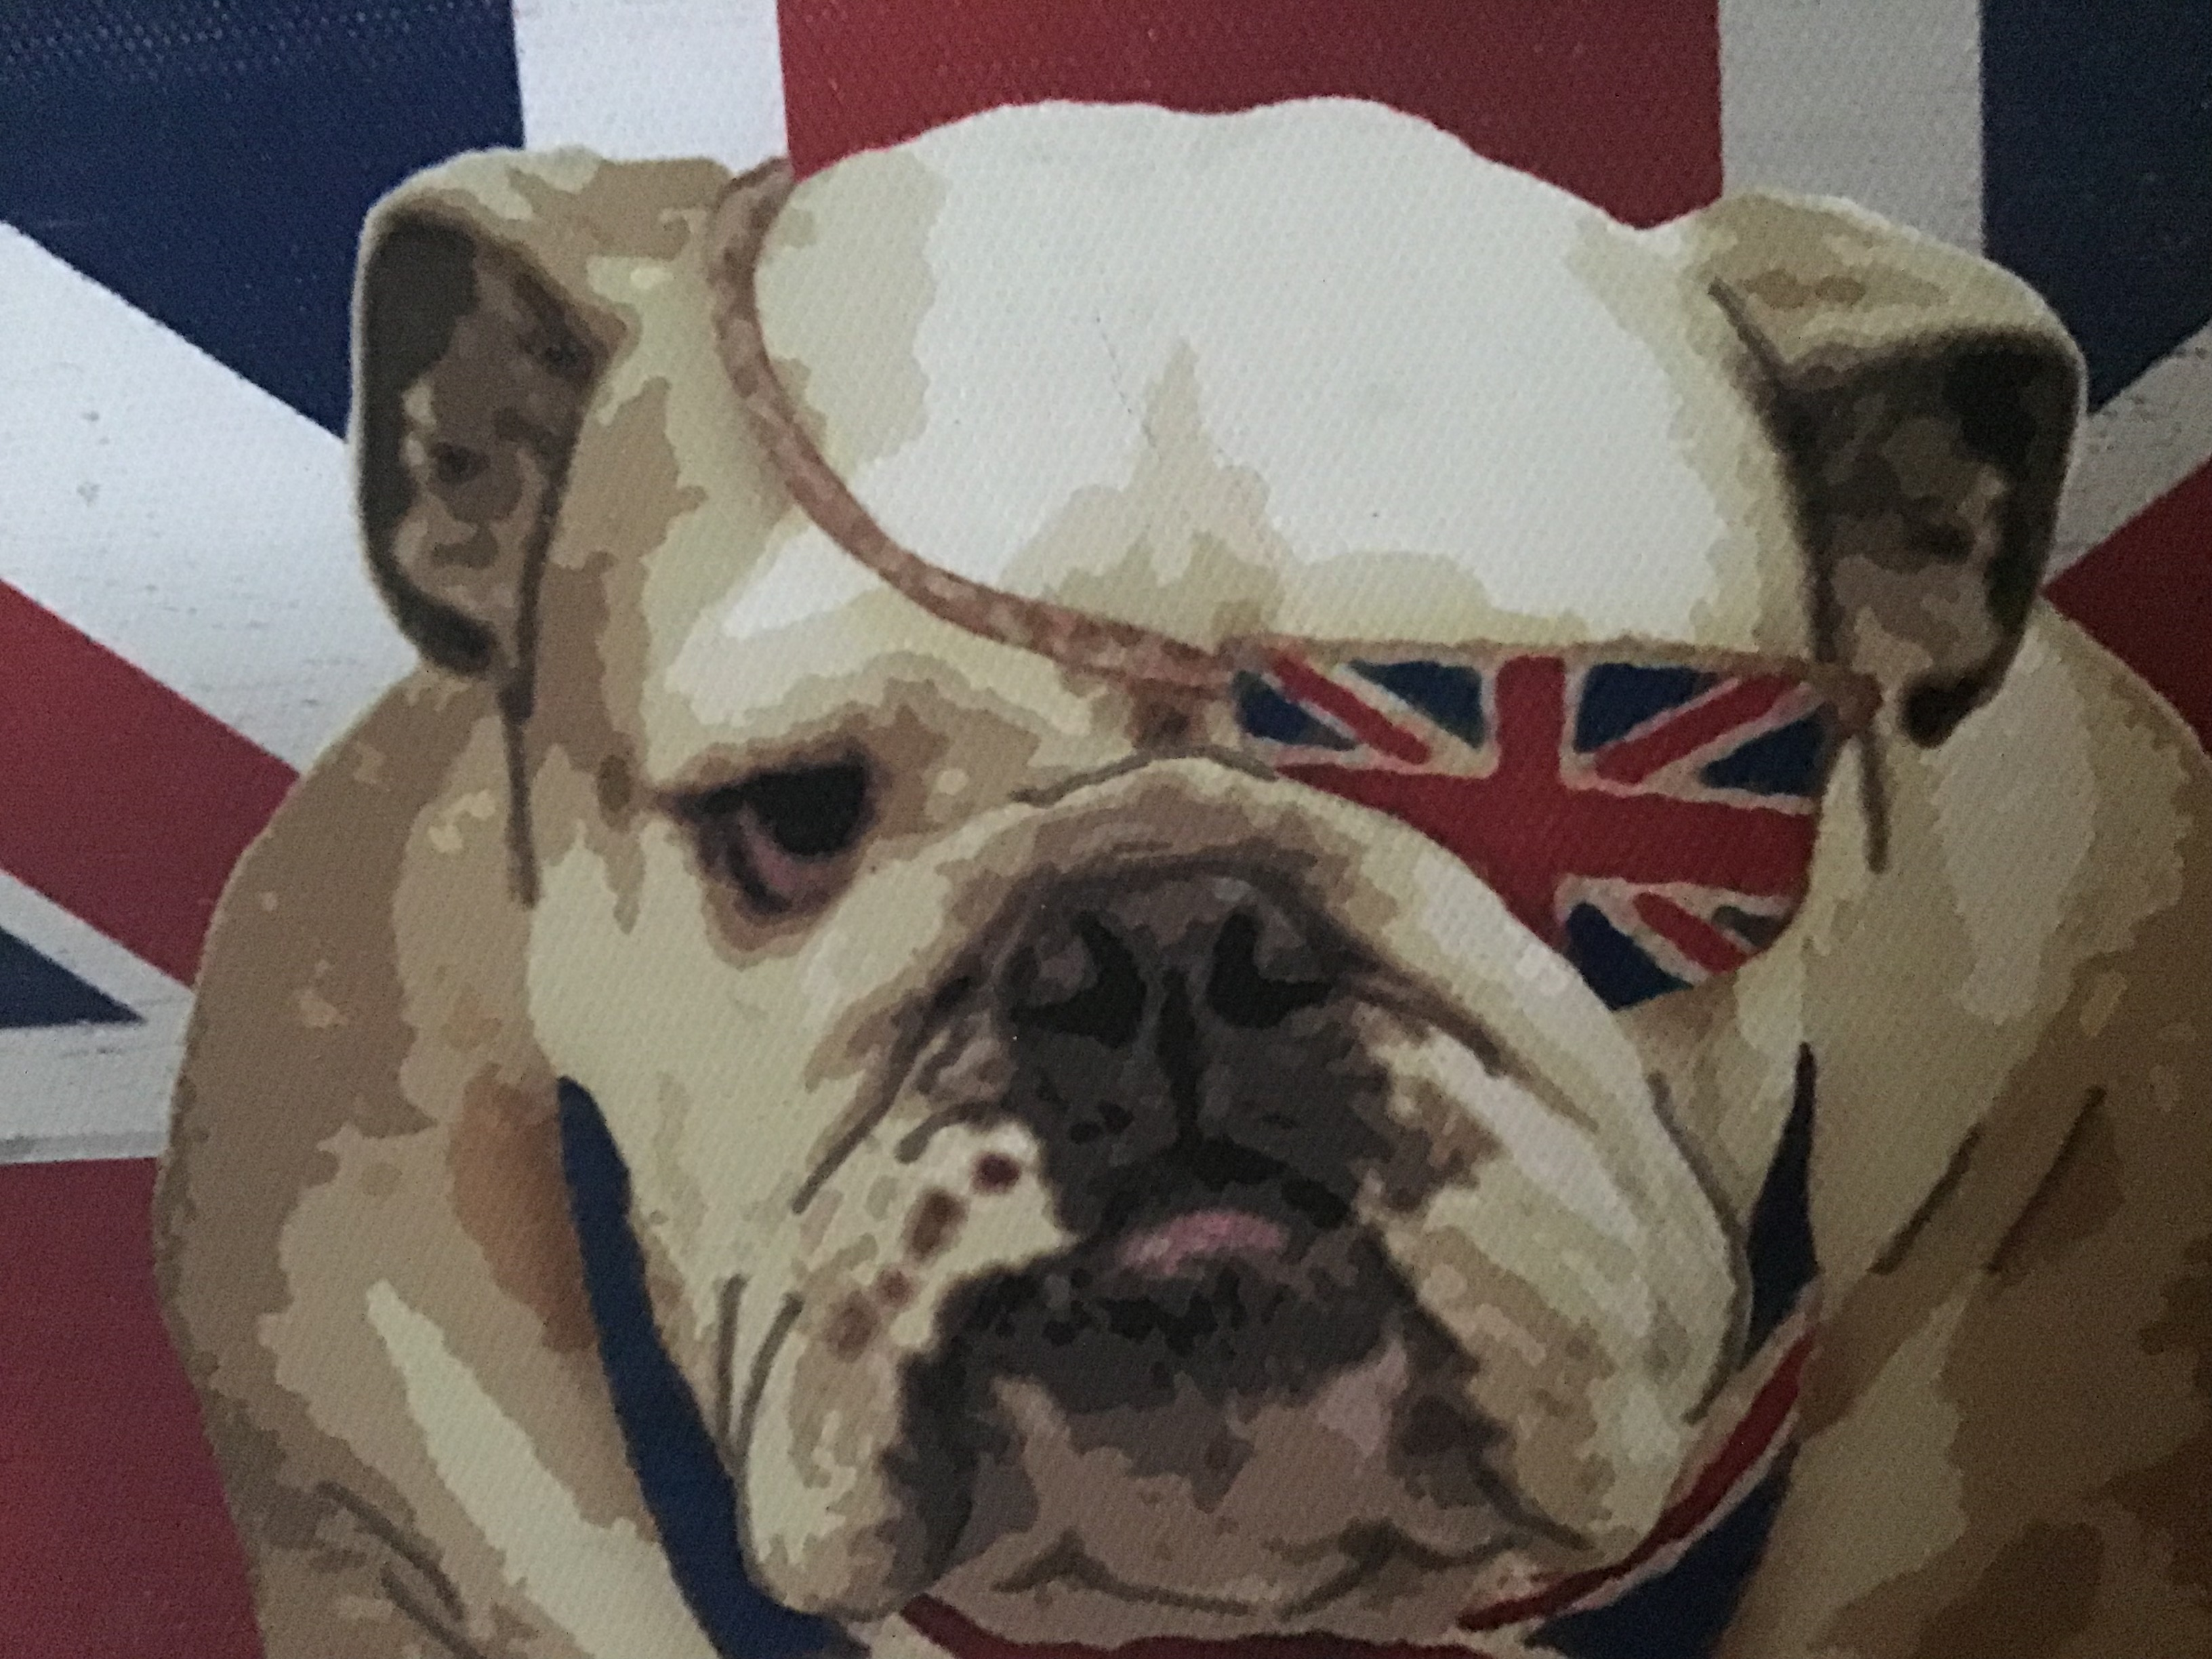 Heads up for more Bulldog memorabilia